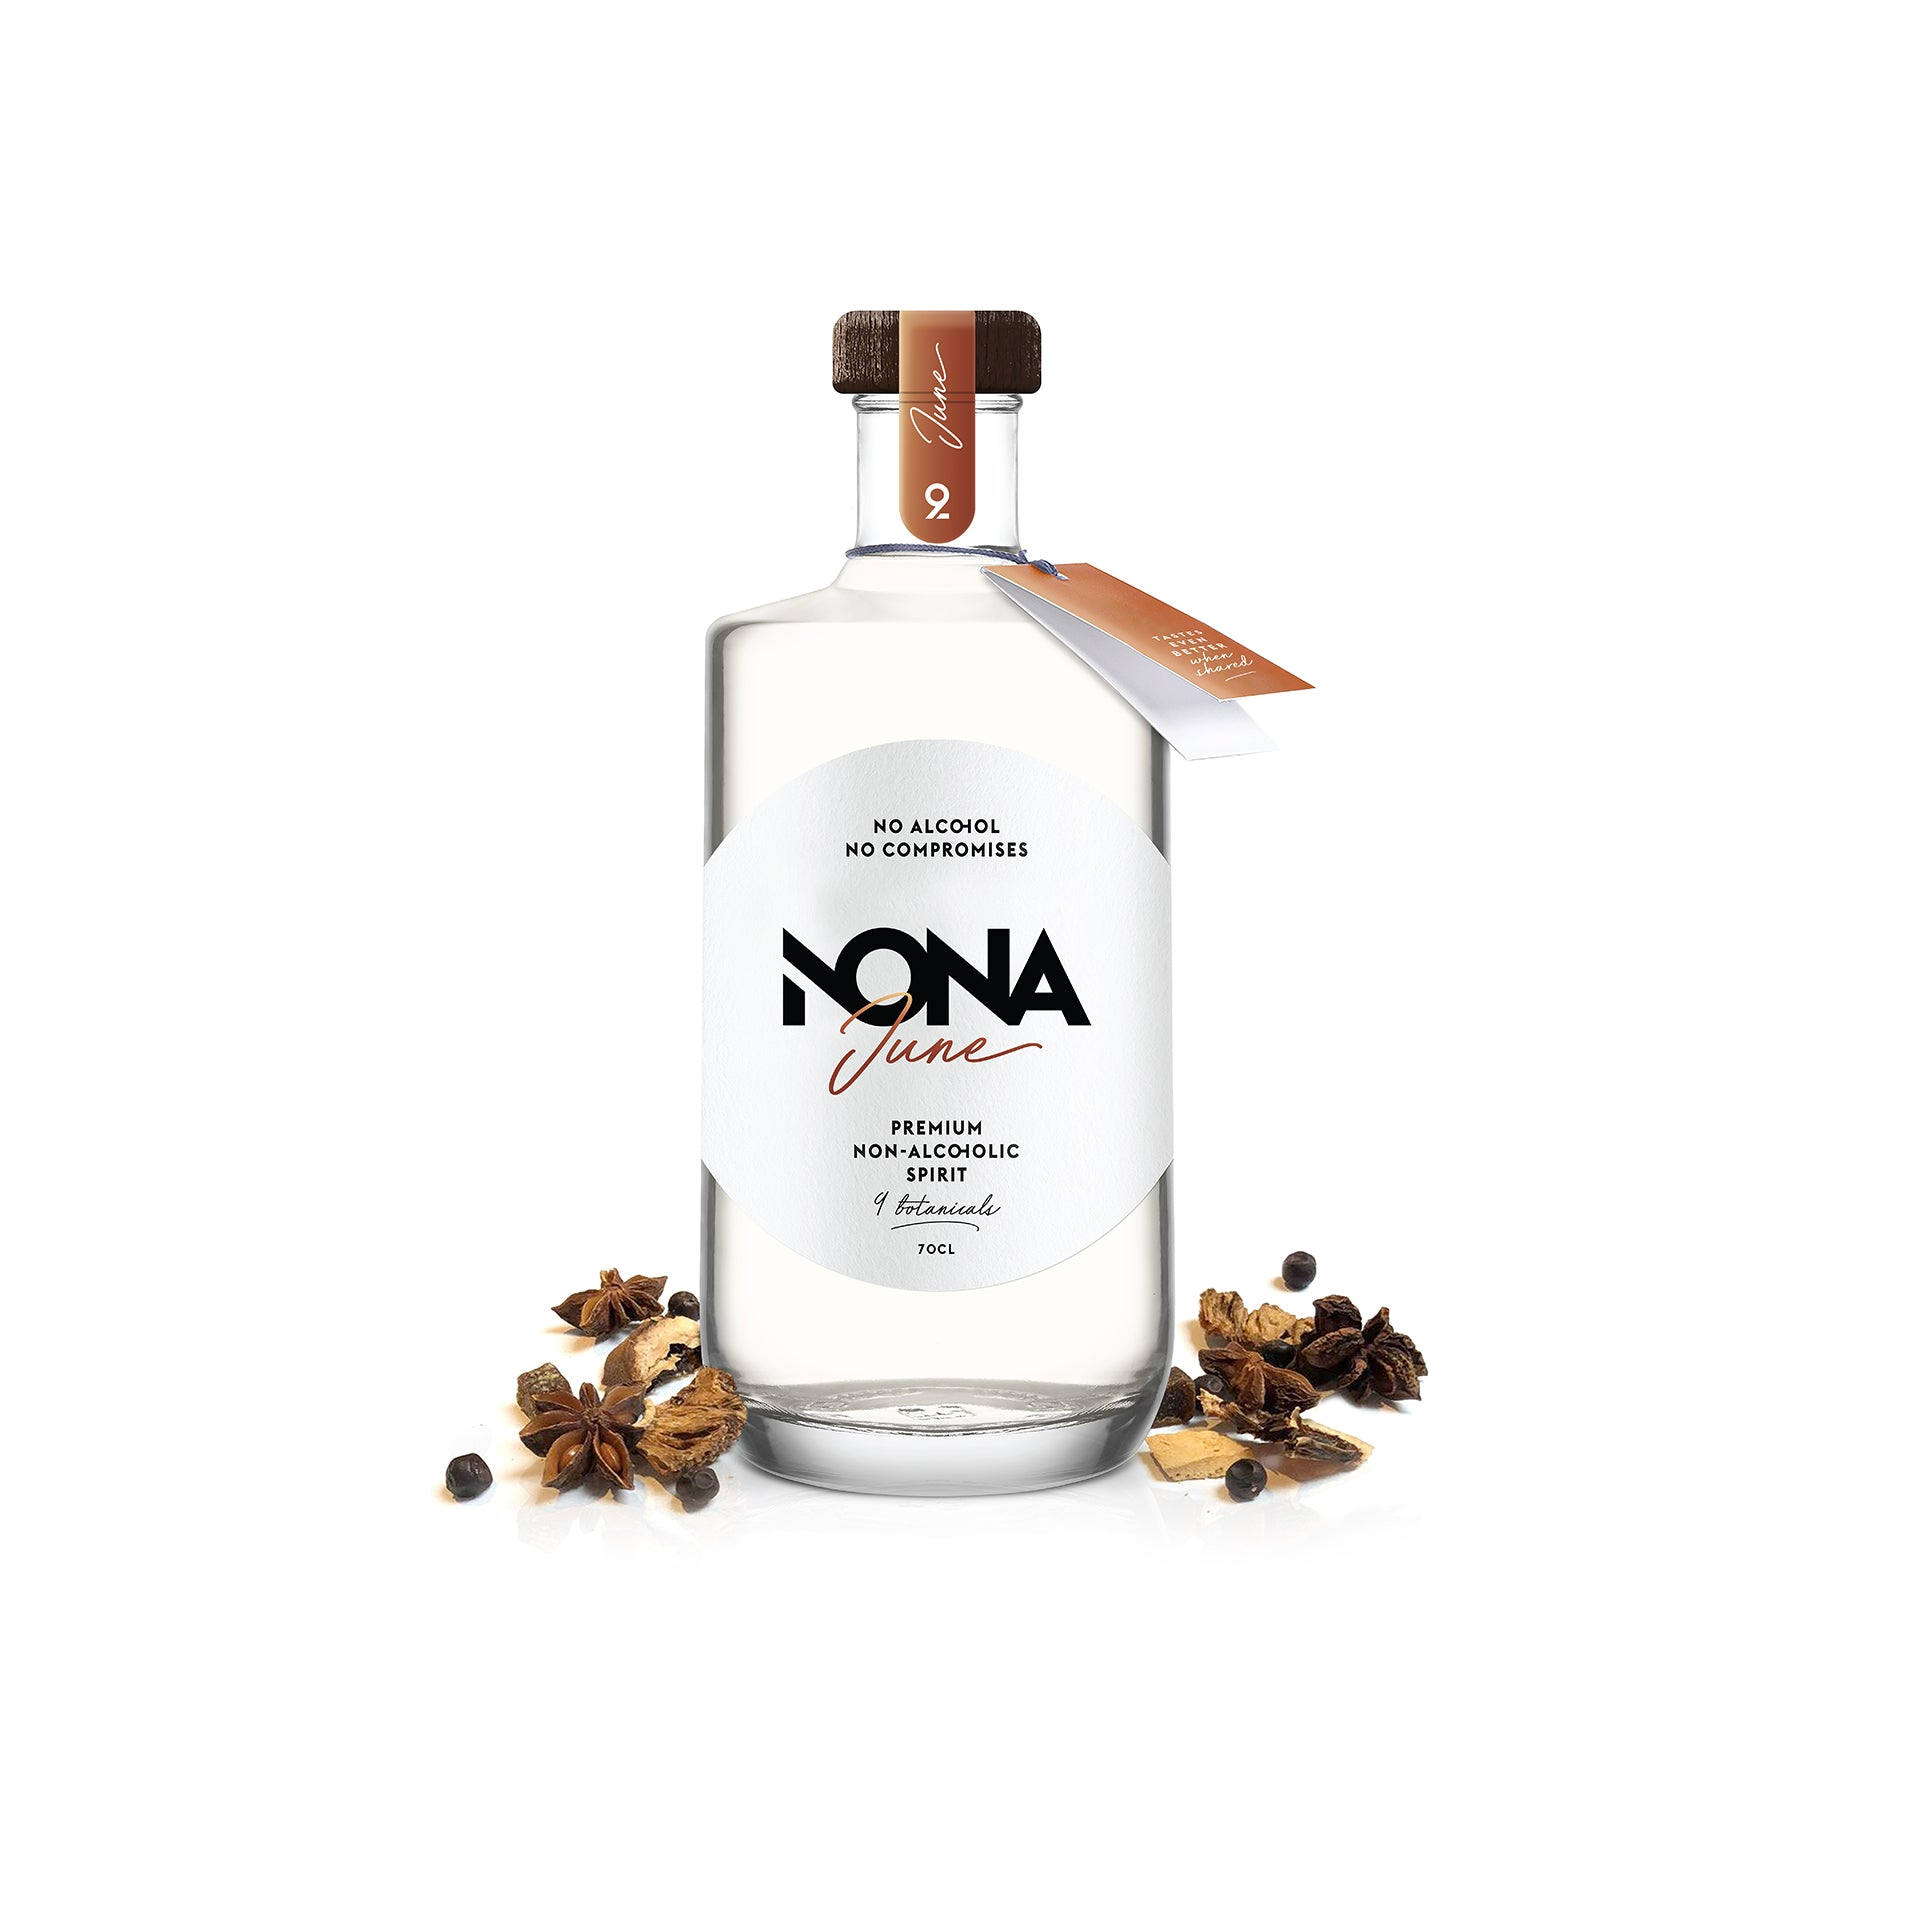 NONA June + Indian tonic 50cL